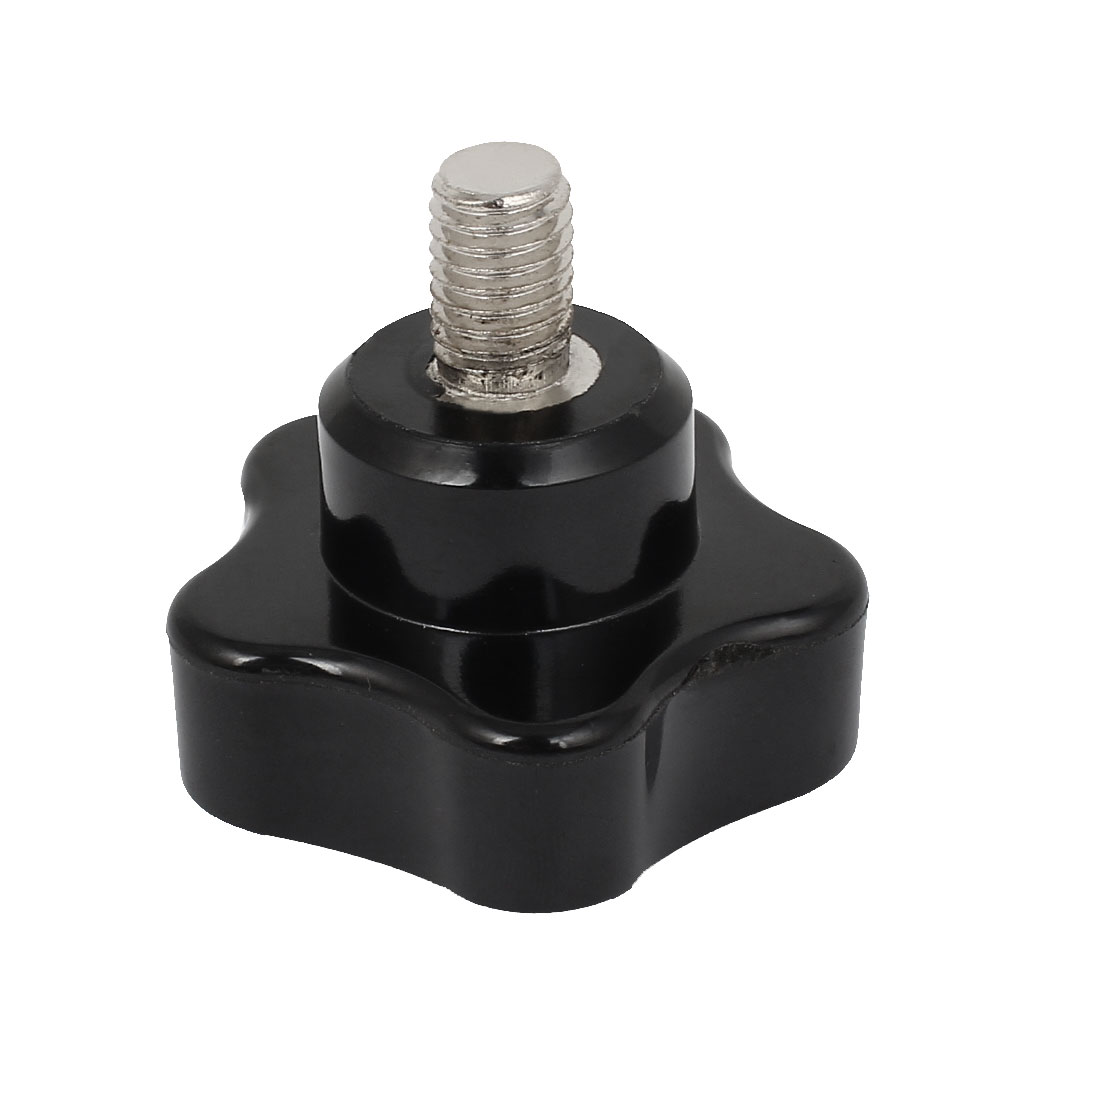 M10x14mm Thread Black Plastic Star Head Screw On Clamping Knob Grip 47mm Dia